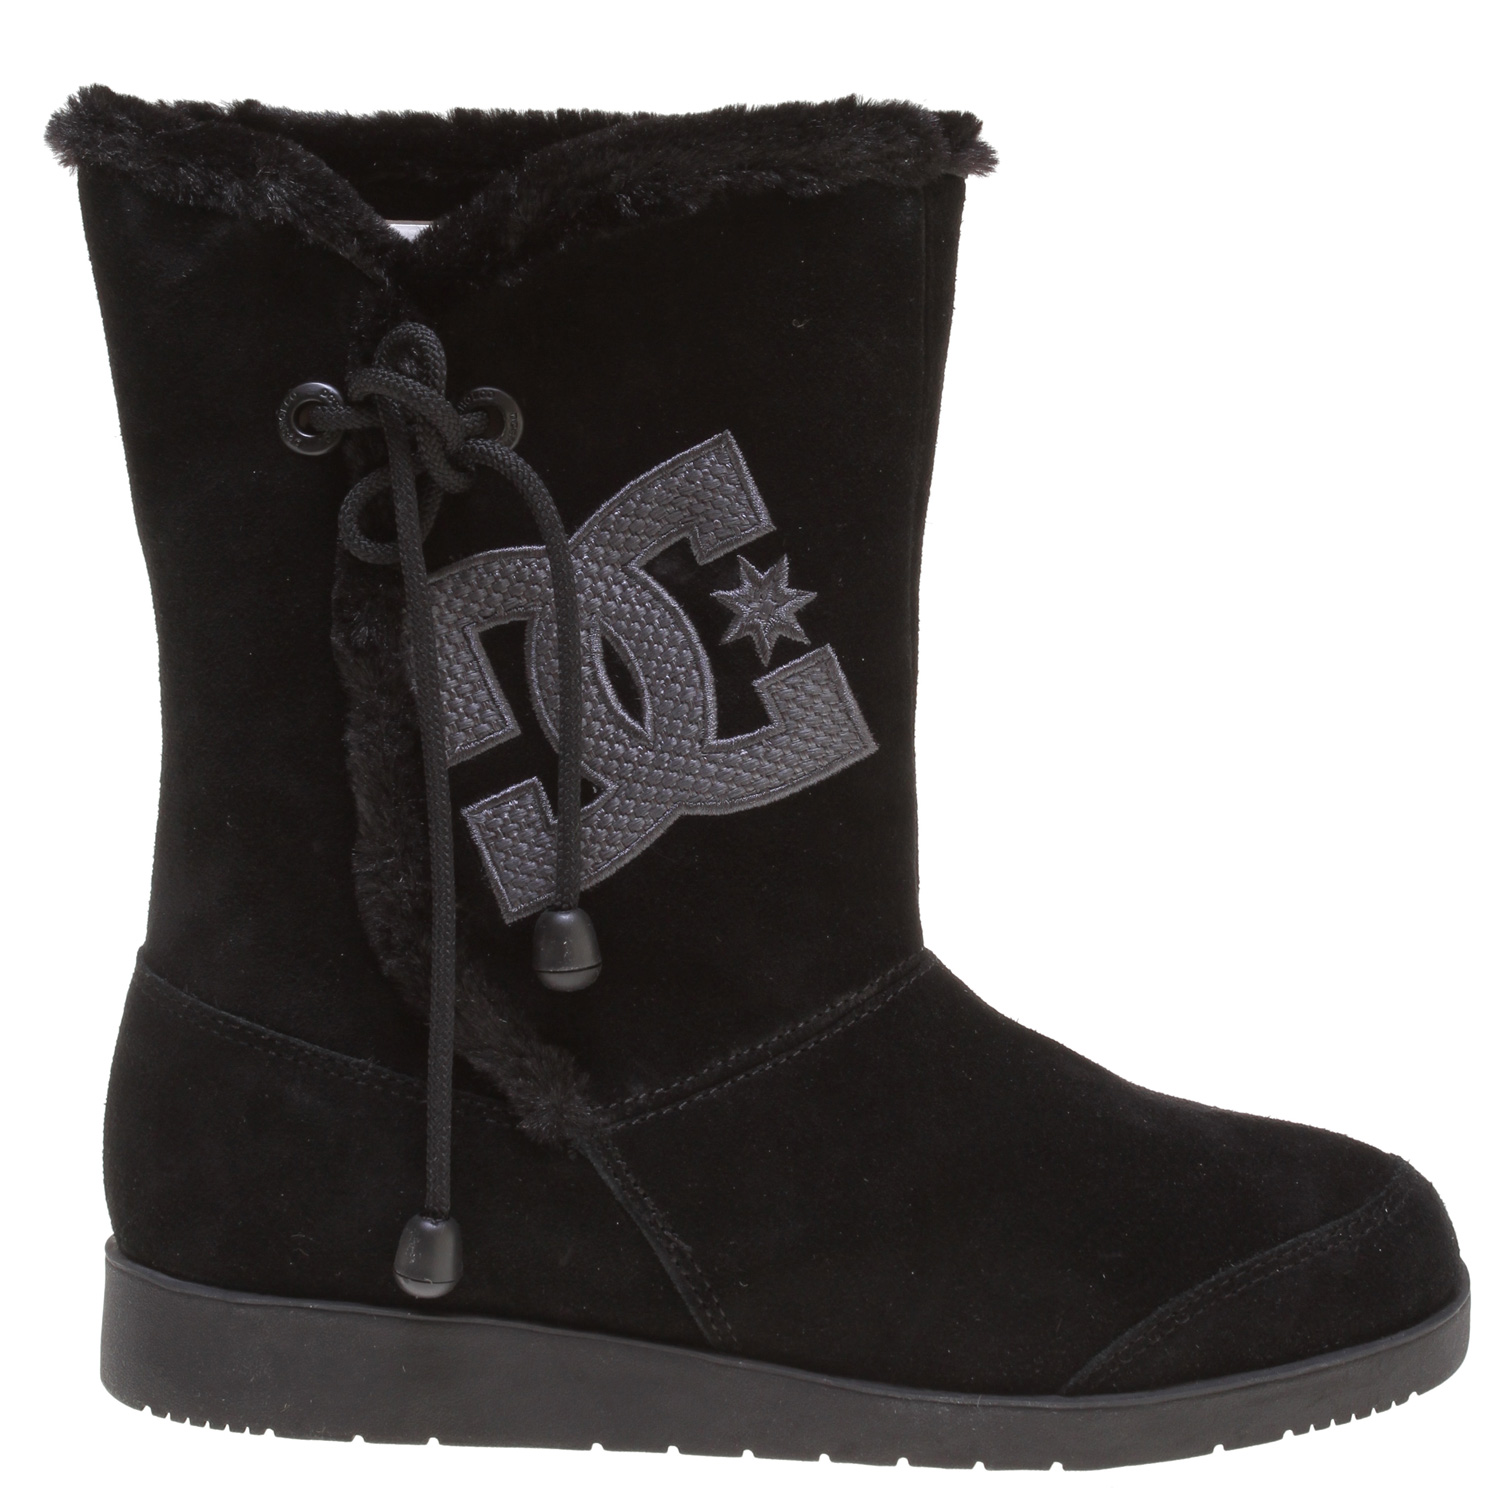 Key Features of the DC Gondola Mid Boots Black/Silver: Textile Upper Vulcanized Construction for great board feel and sole flex Latex Insole for comfort Abrasion-Resistant Sticky Rubber Outsole Die cut eva insole die cut eva midsole - $44.95